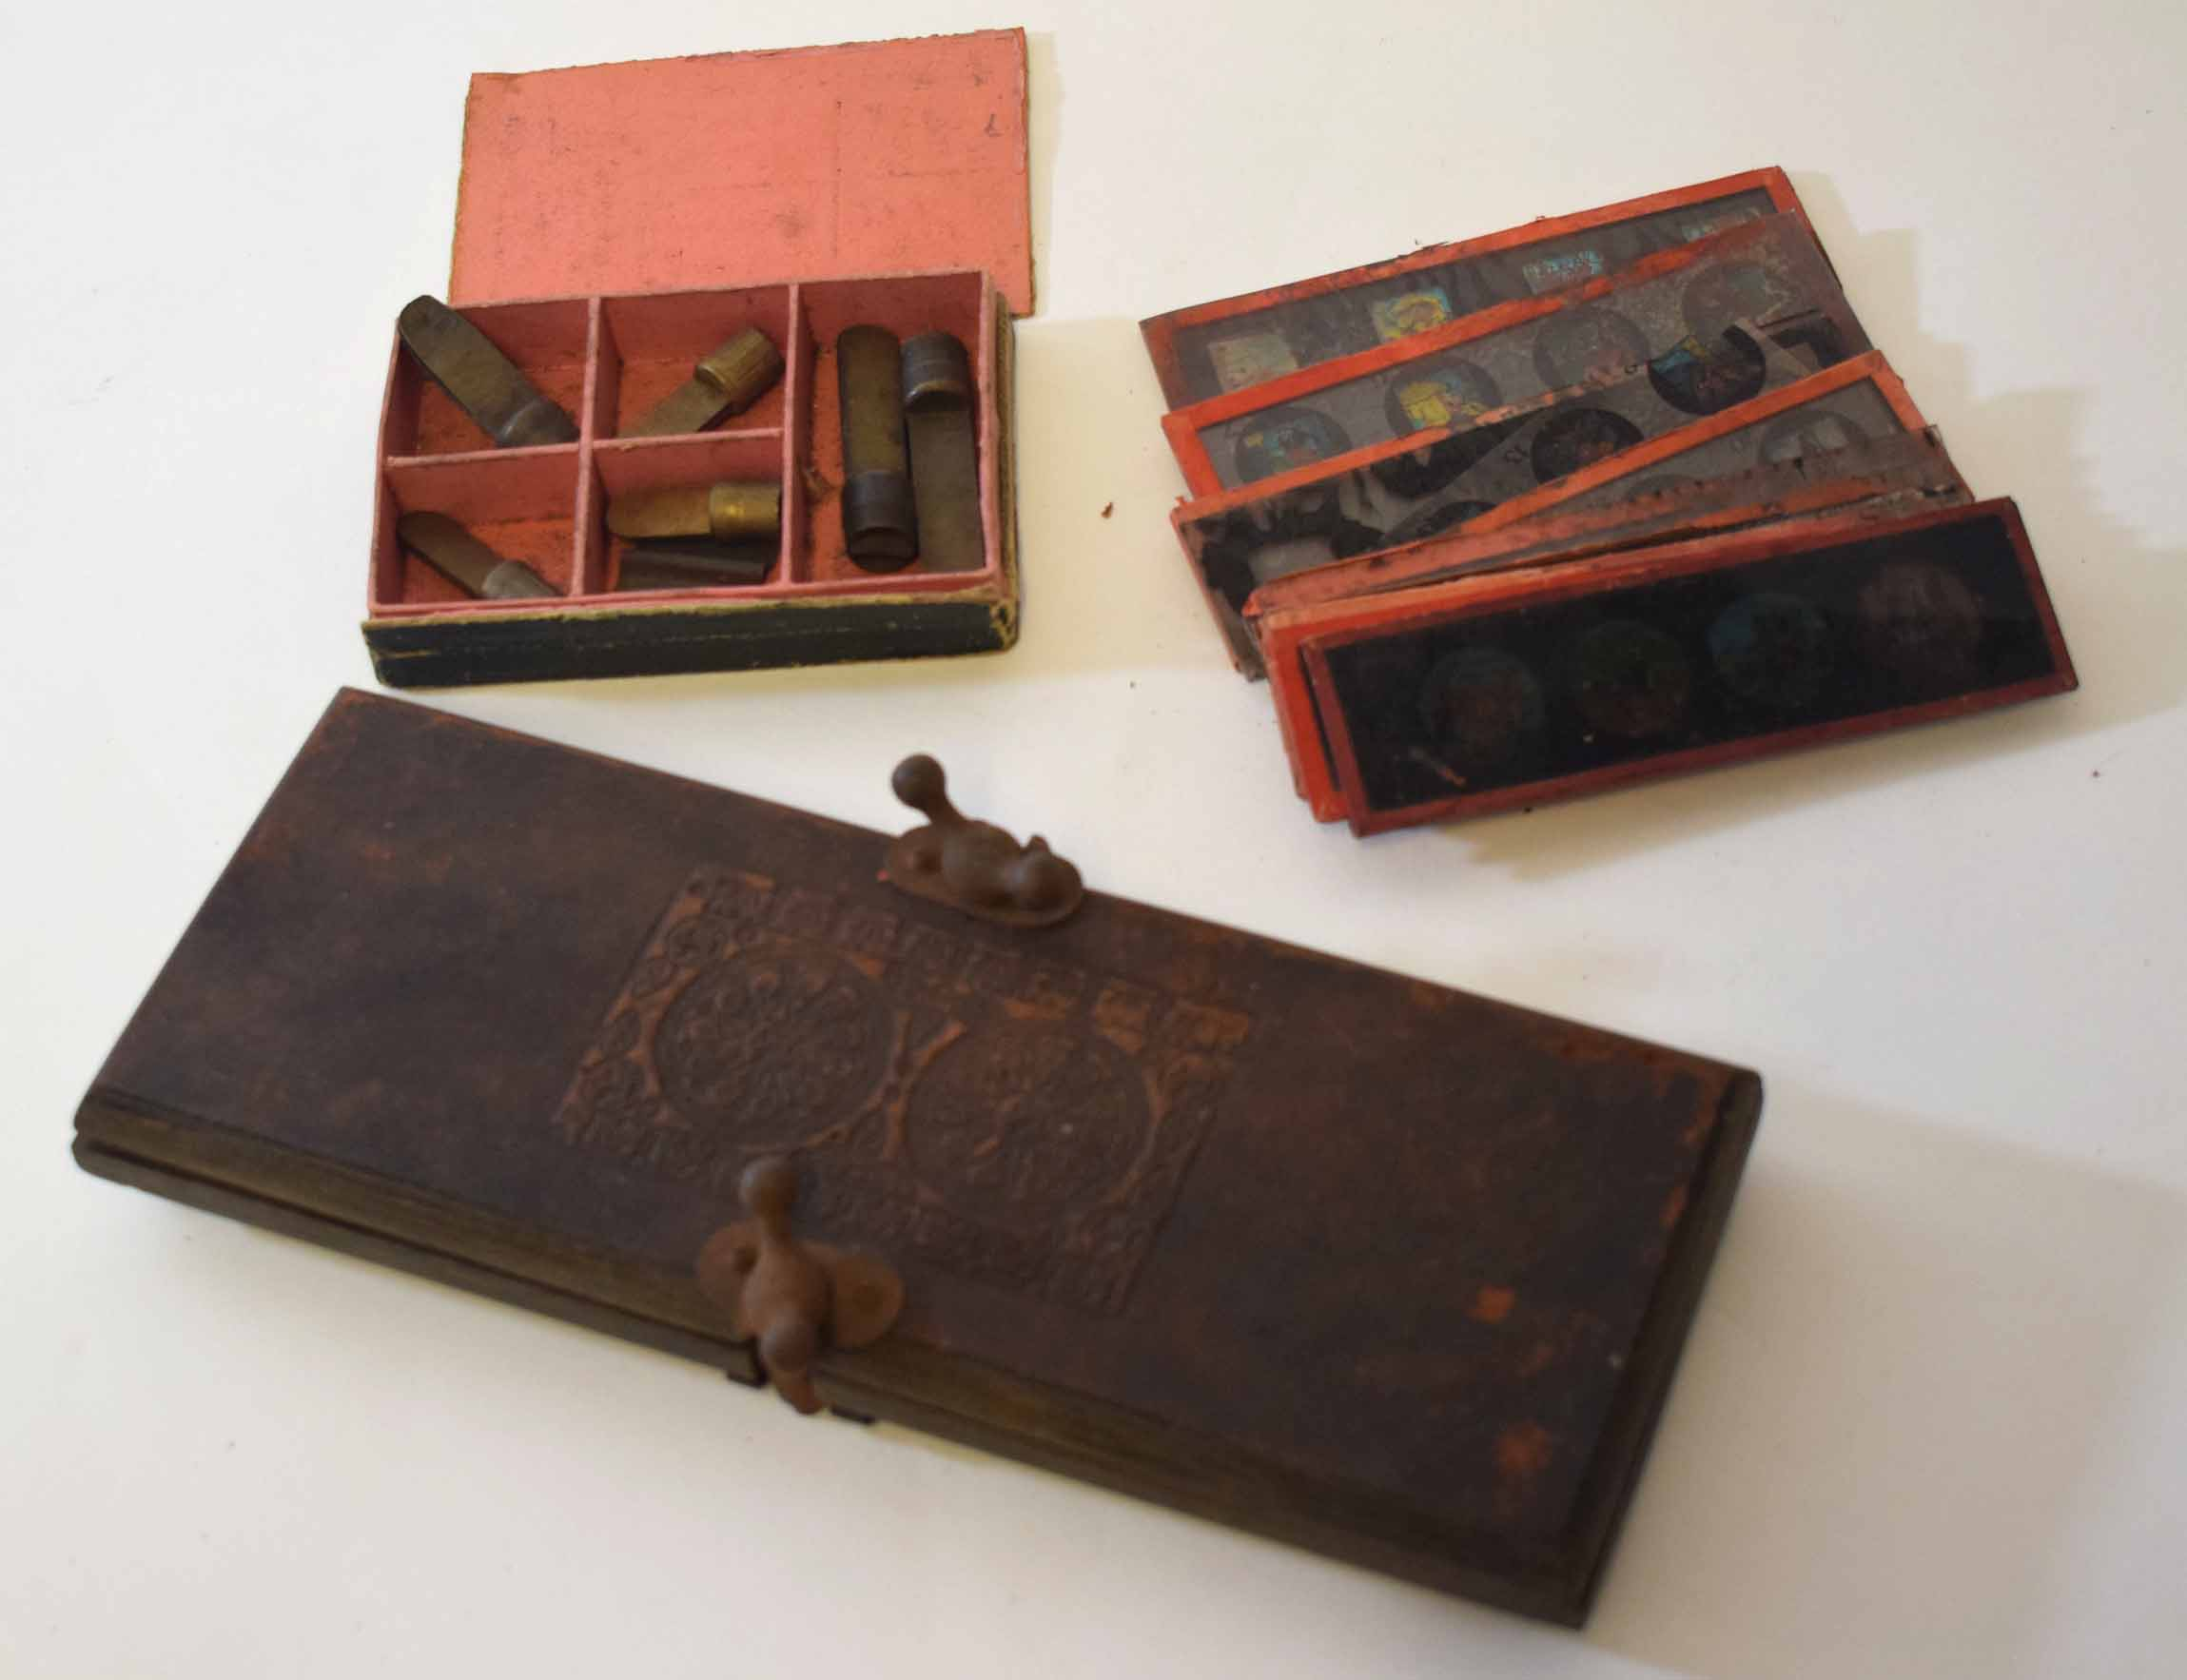 Lot 306 - Mixed Lot: tie-press, together with a quantity of glass magic lantern slides and a further box